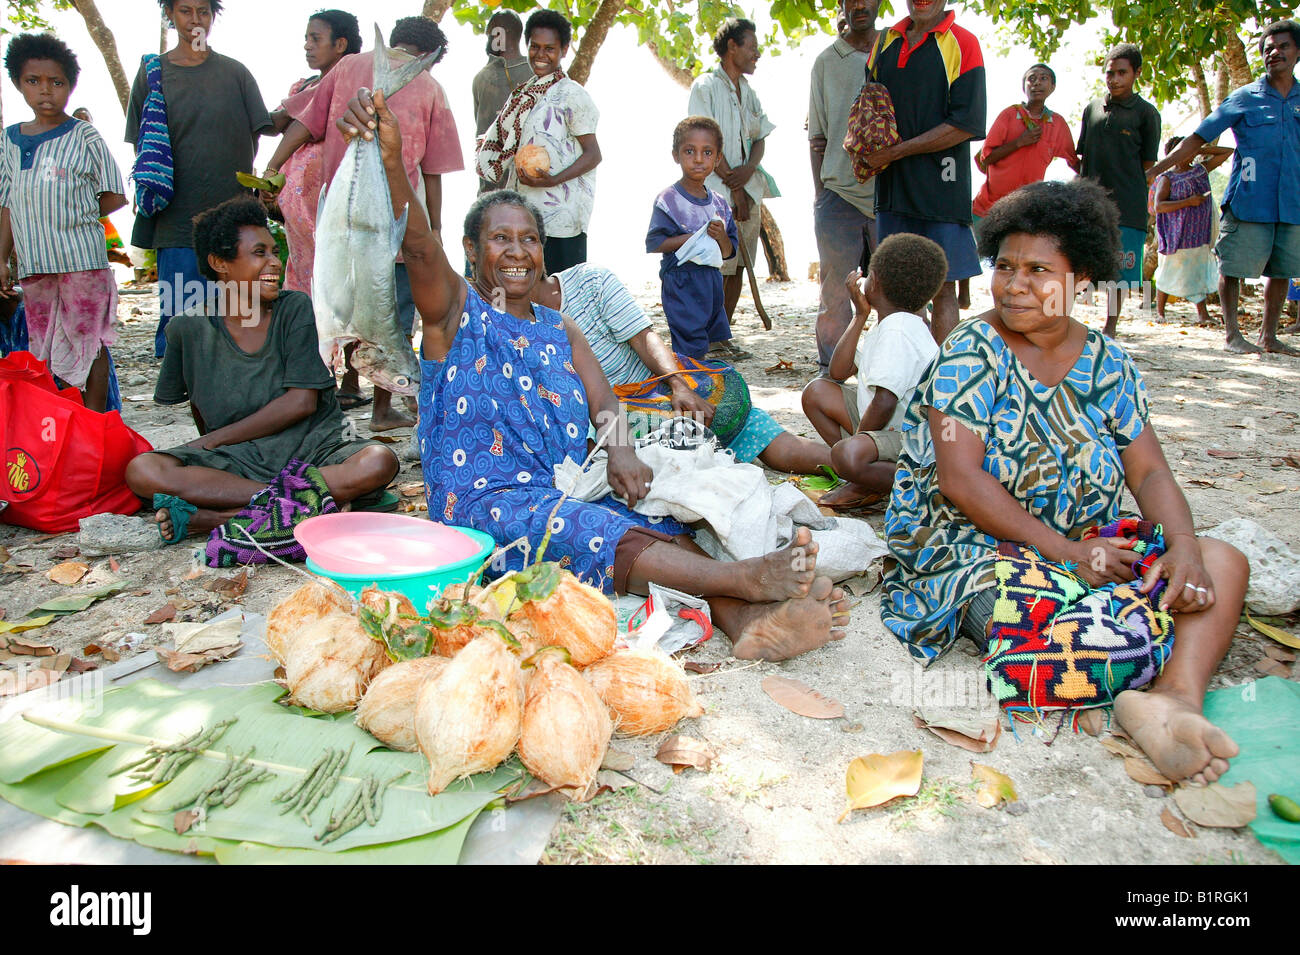 Women selling vegetables and fish at a market, Heldsbach, Papua New Guinea, Melanesia Stock Photo